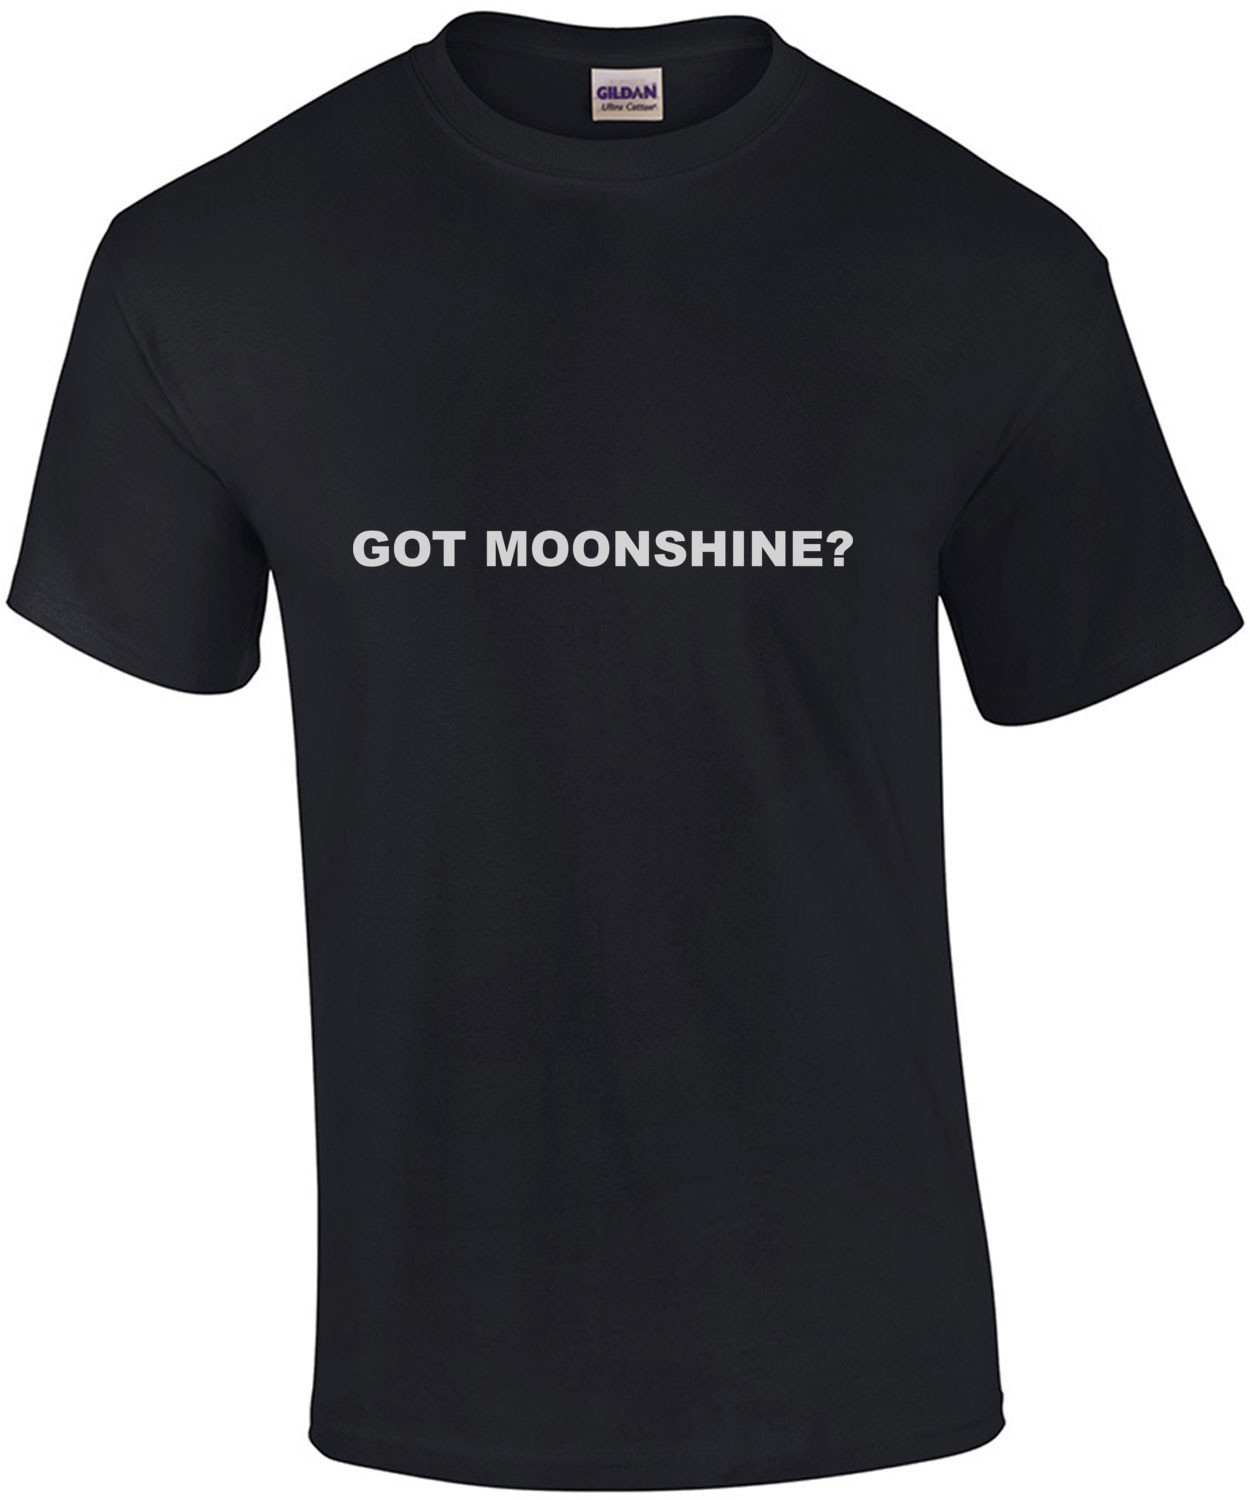 Got Moonshine T-Shirt